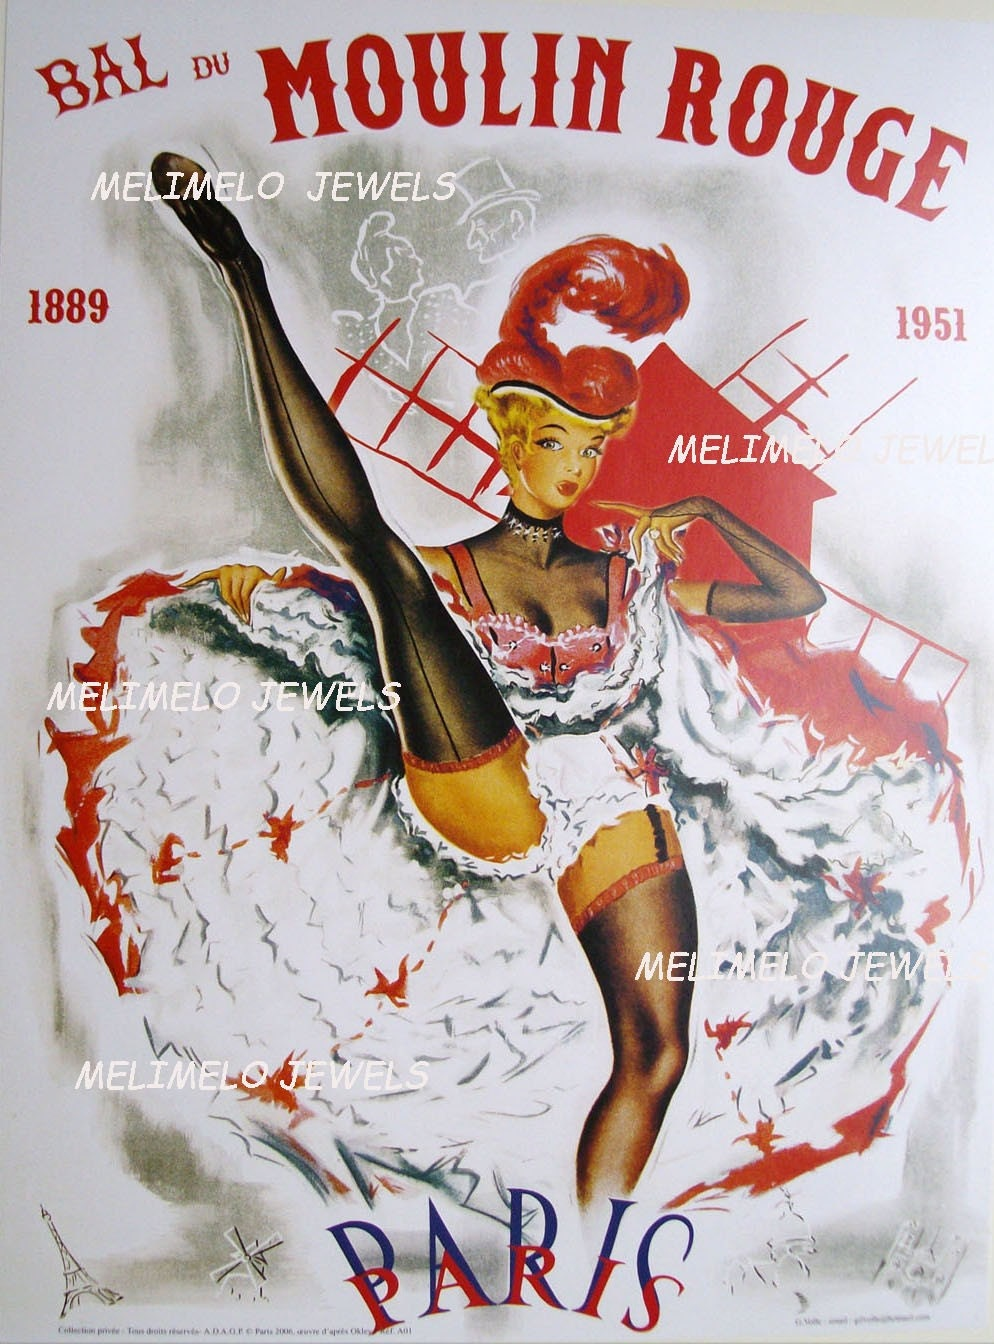 Paris Moulin Rouge Vintage Poster Reproduction FREE